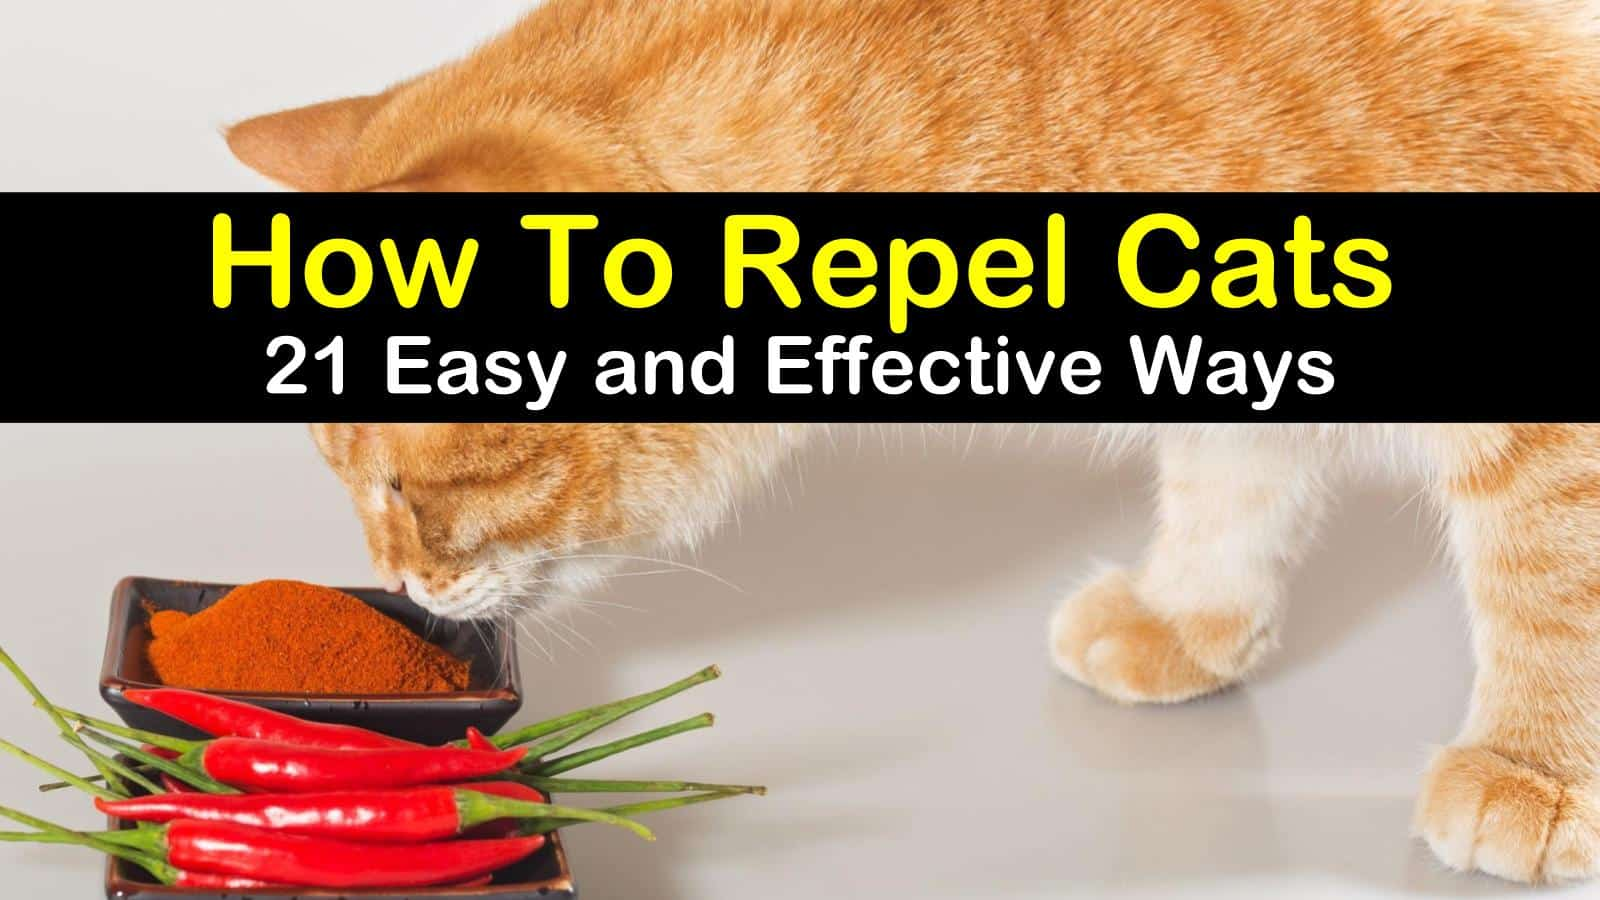 How To Repel Cats - 21 Easy and Effective Ways titlimg1